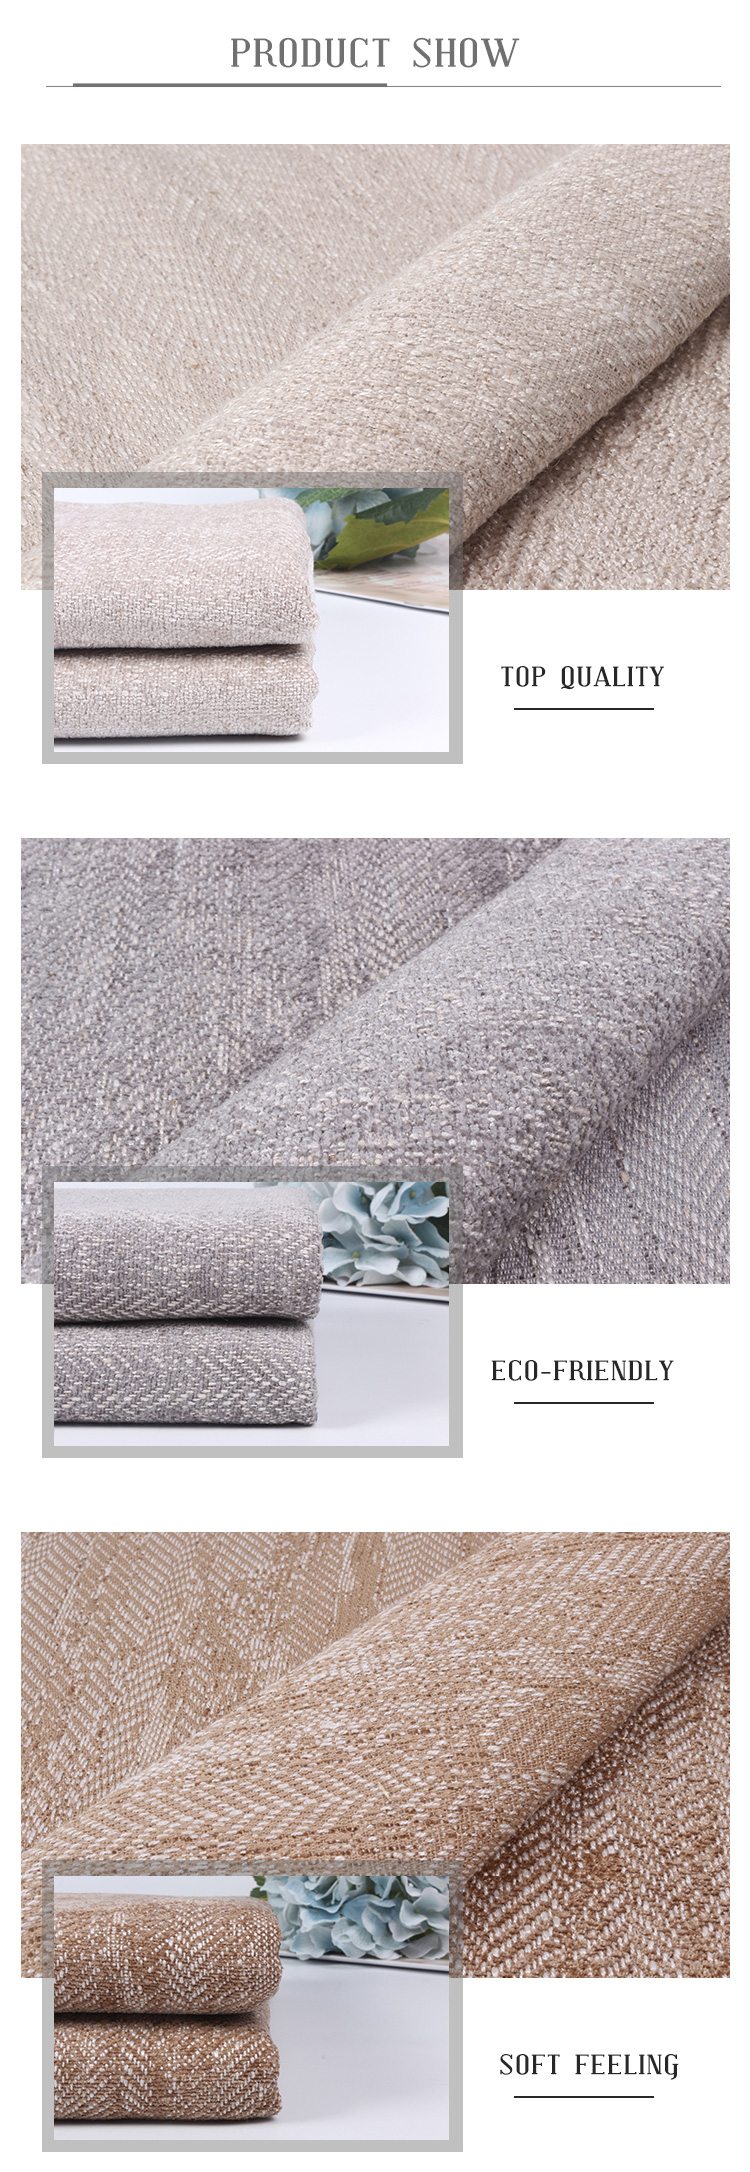 Surprising China Lazy Boy Sofa Cover Fabric Price Per Meter Upholstery Fabric For Sofa Microfiber Sofa Fabric Buy Sofa Fabric Sofa Cover Fabric Lazy Boy Theyellowbook Wood Chair Design Ideas Theyellowbookinfo